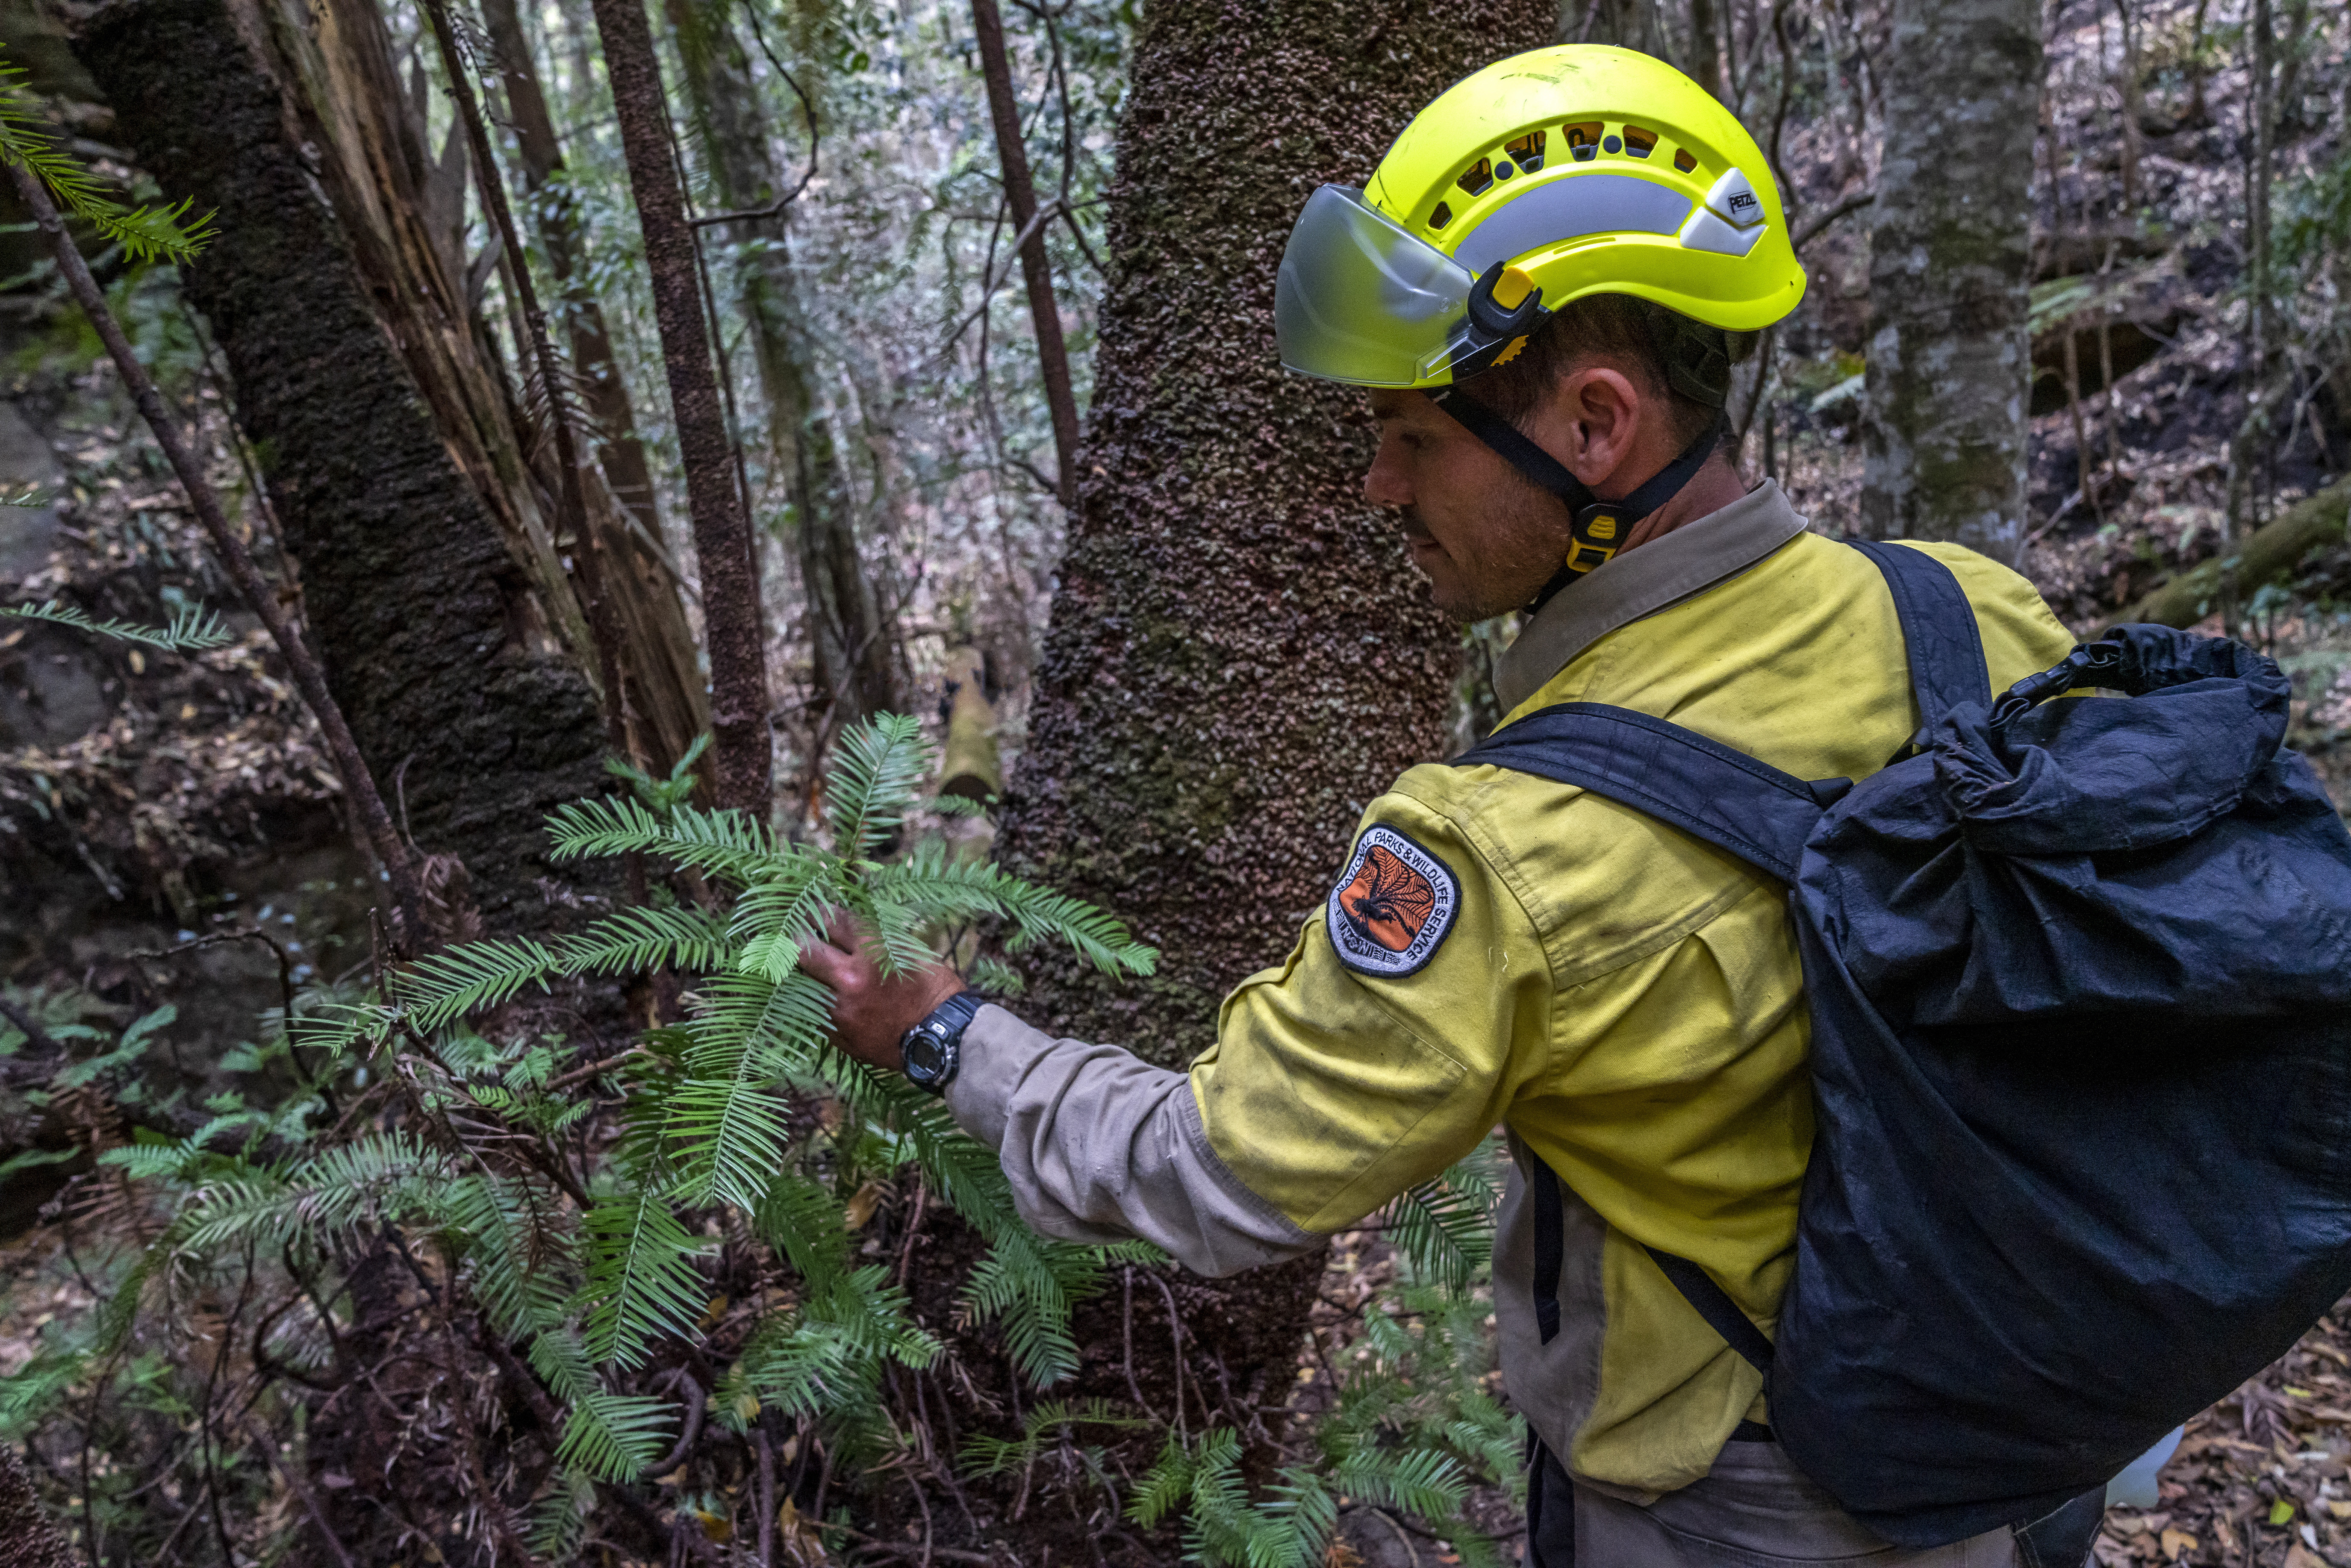 NSW National Parks and Wildlife Service personnel inspect the health of Wollemi pine trees in the Wollemi National Park, New South Wales, Australia in this photo provided Jan. 16, 2020.